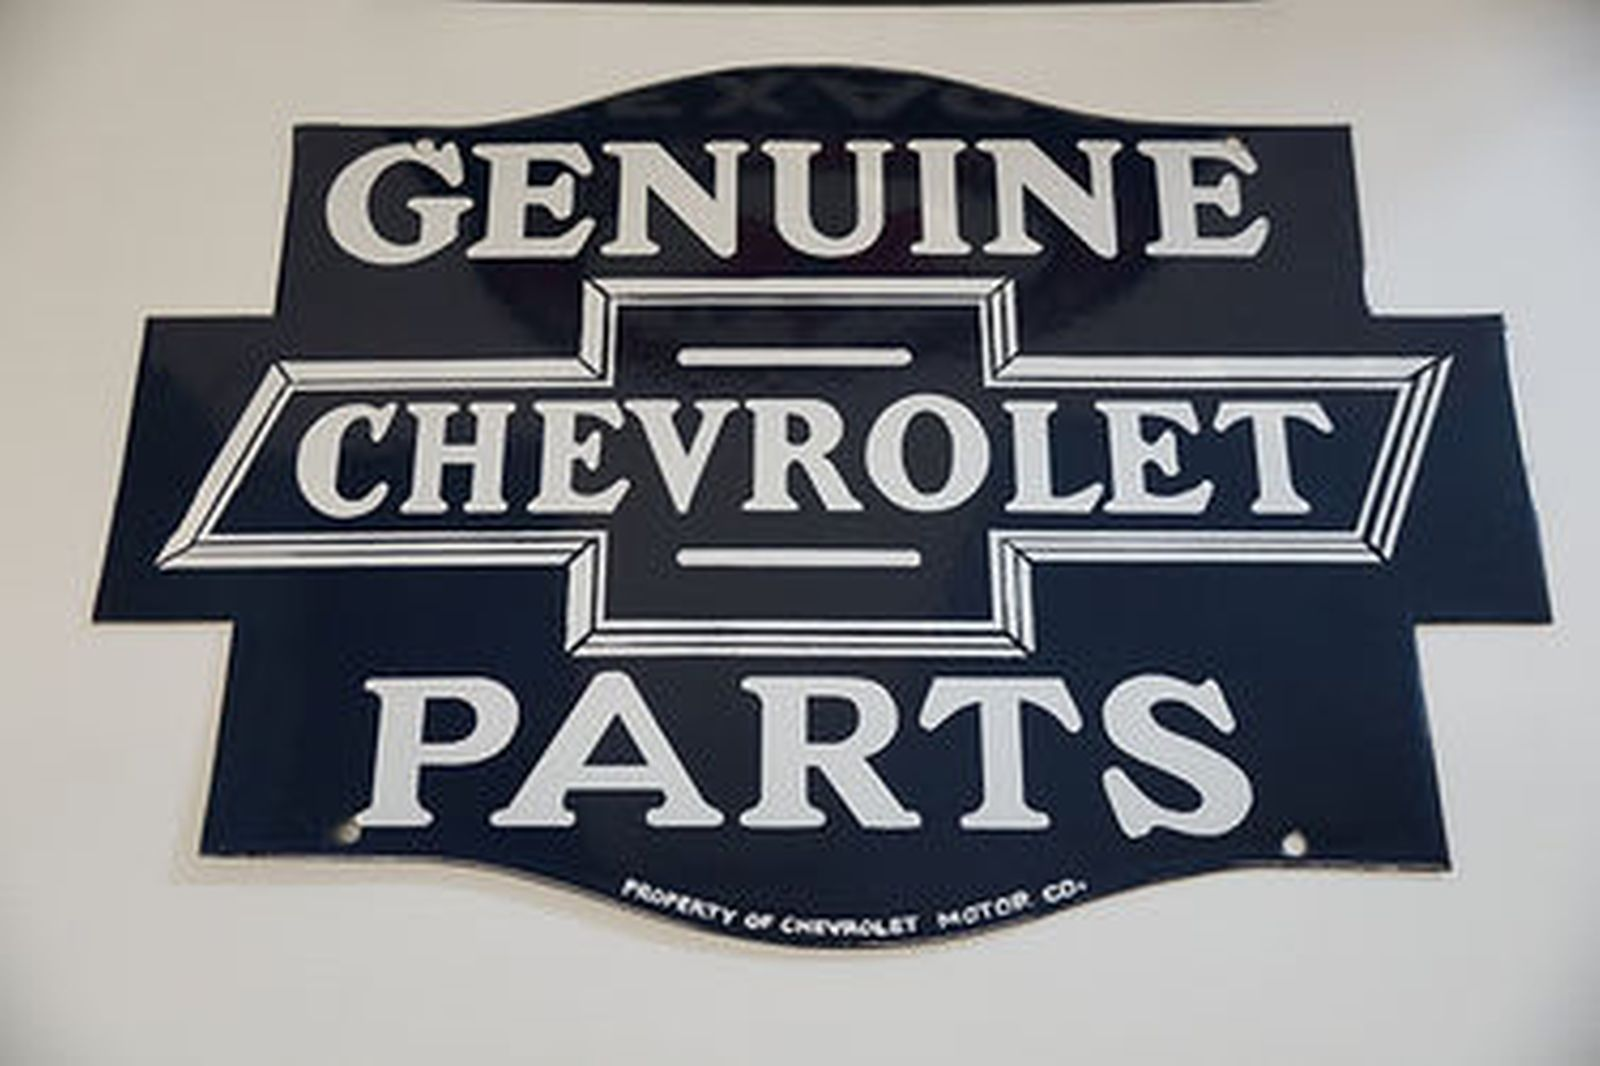 Sold enamel signs texaco motor oil genuine chevrolet parts enamel signs texaco motor oil genuine chevrolet parts reproduction sciox Choice Image